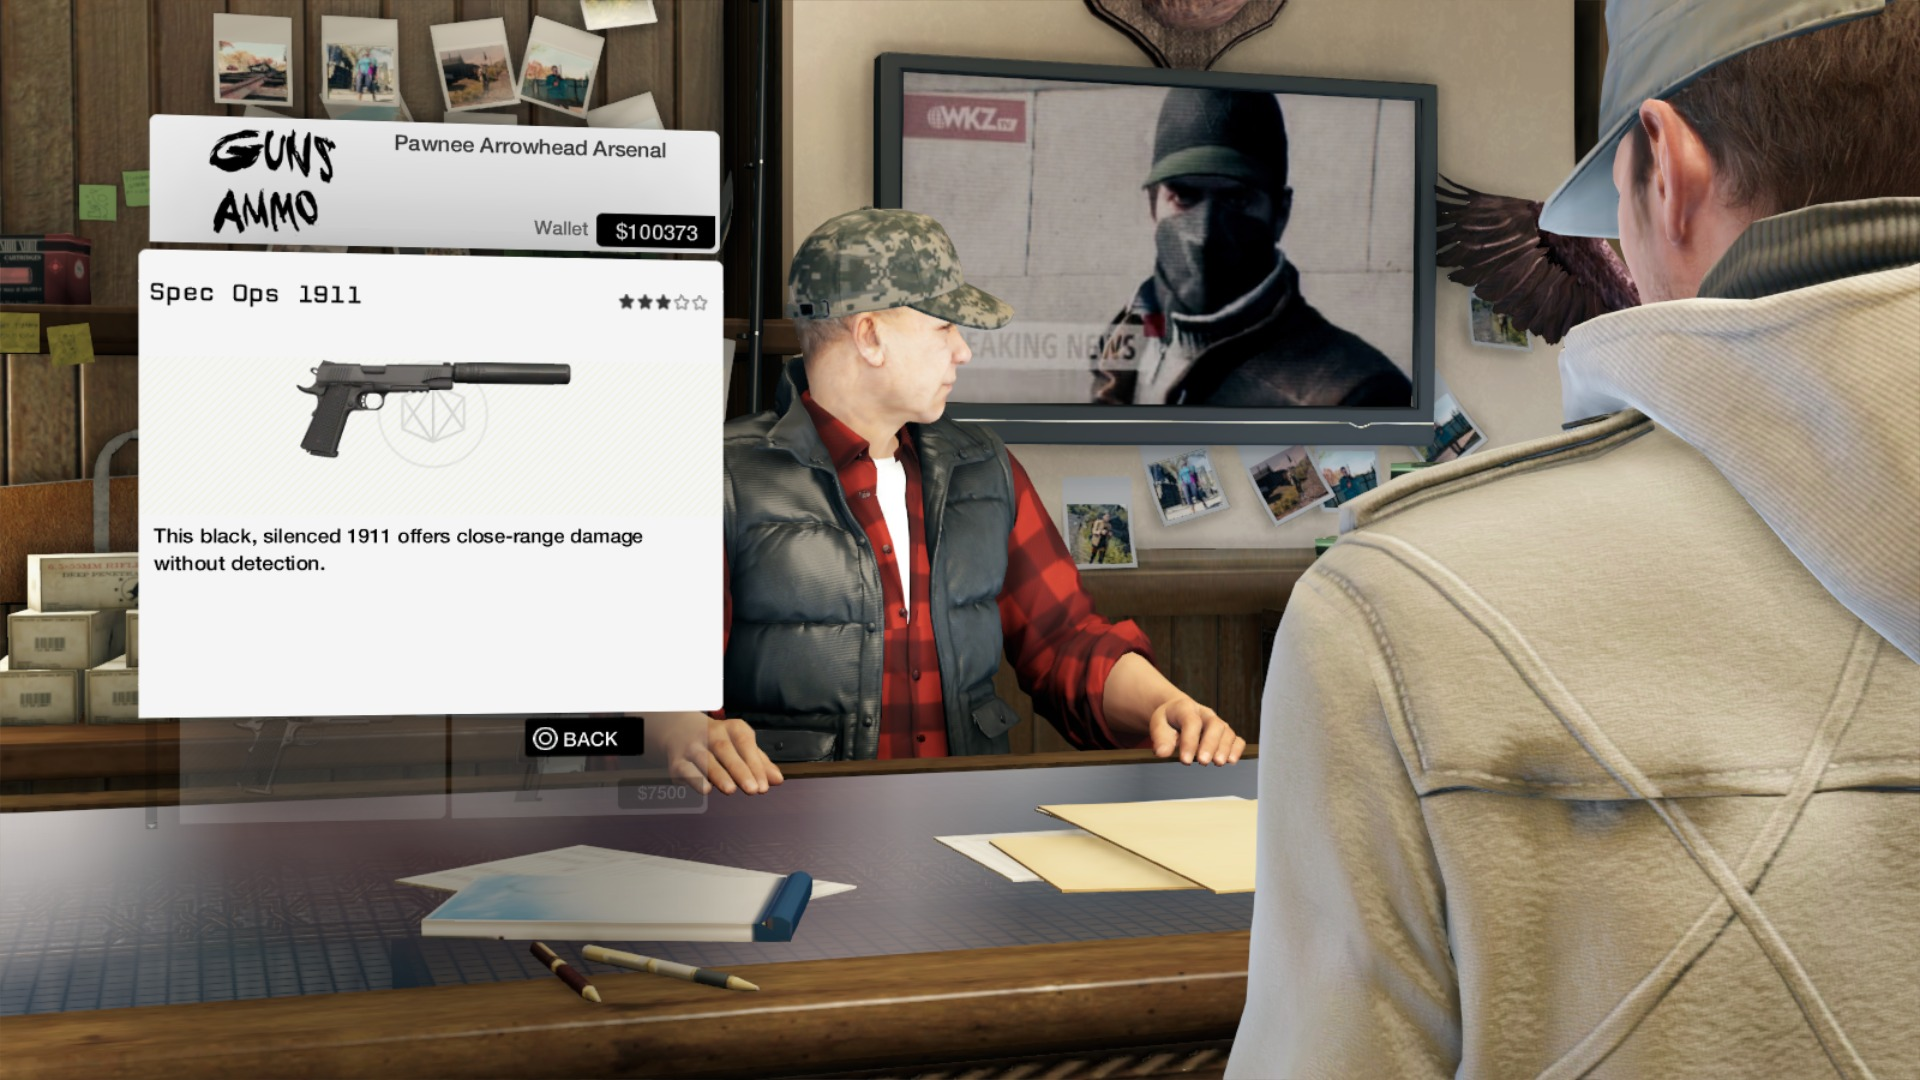 WATCH_DOGS™_20140529171023